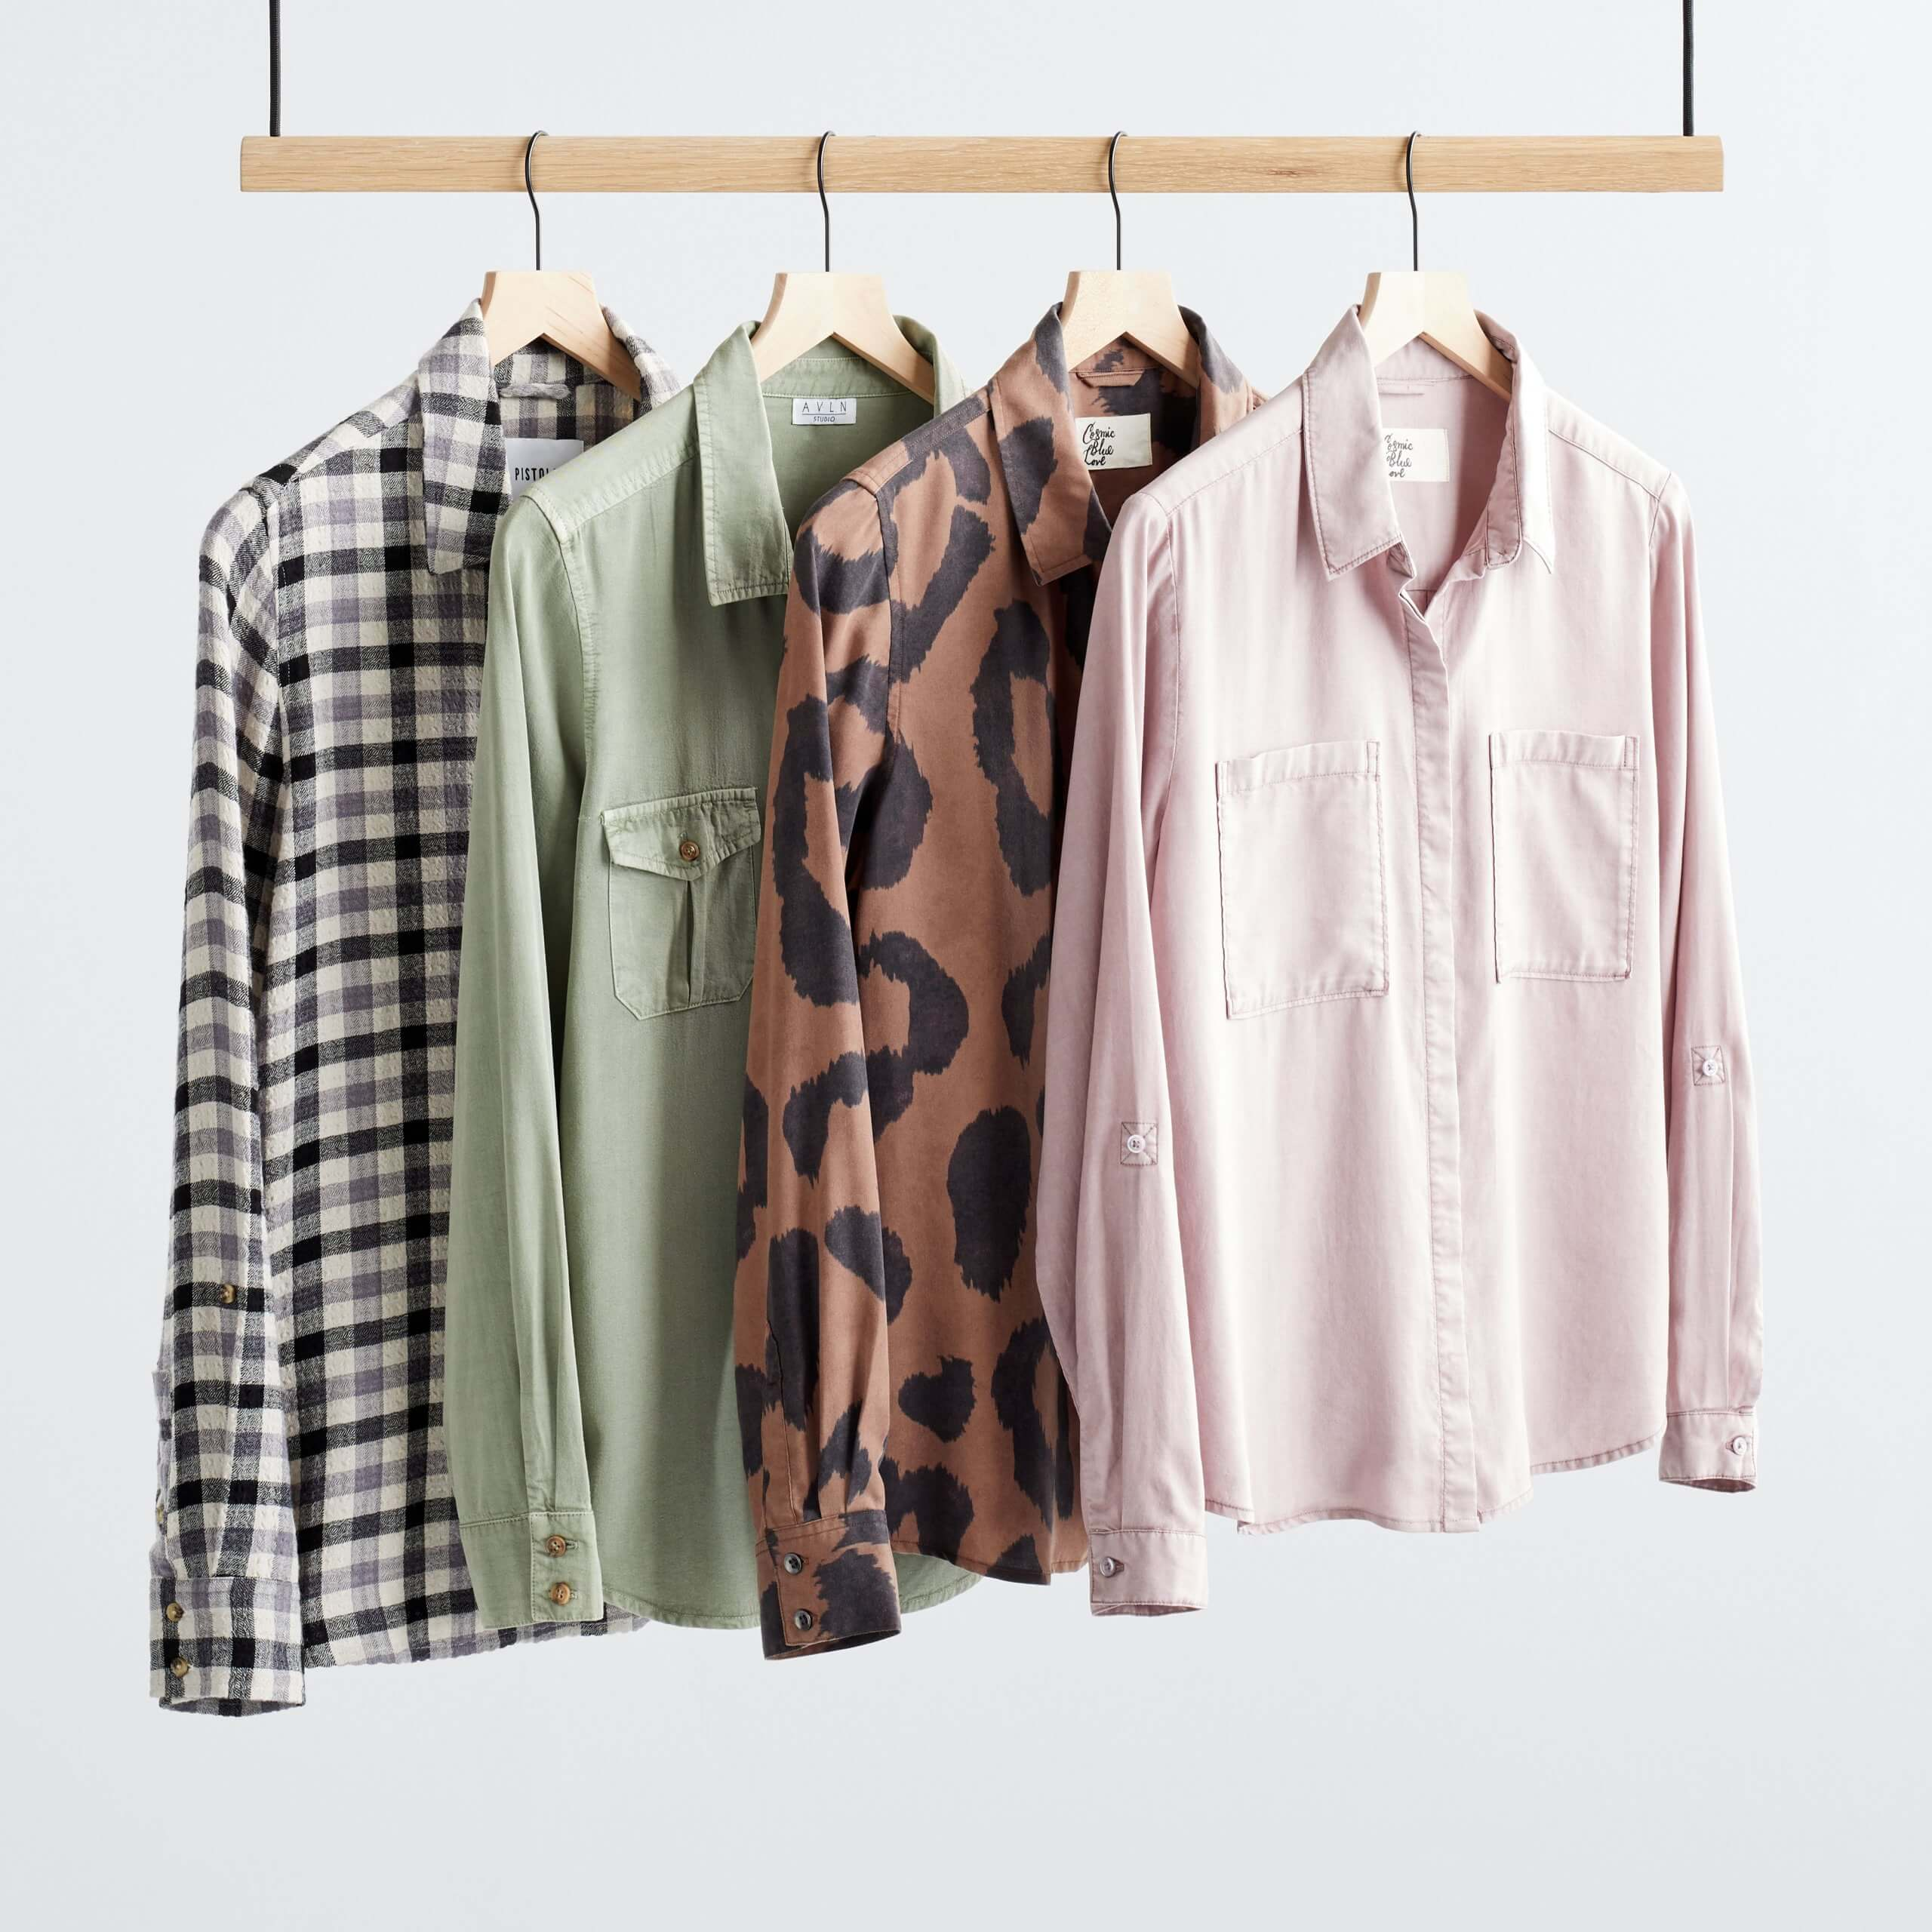 Stitch Fix Women's rack featuring button-front shirts on wooden hangers in black and white plaid, olive green, brown leopard print and light pink.